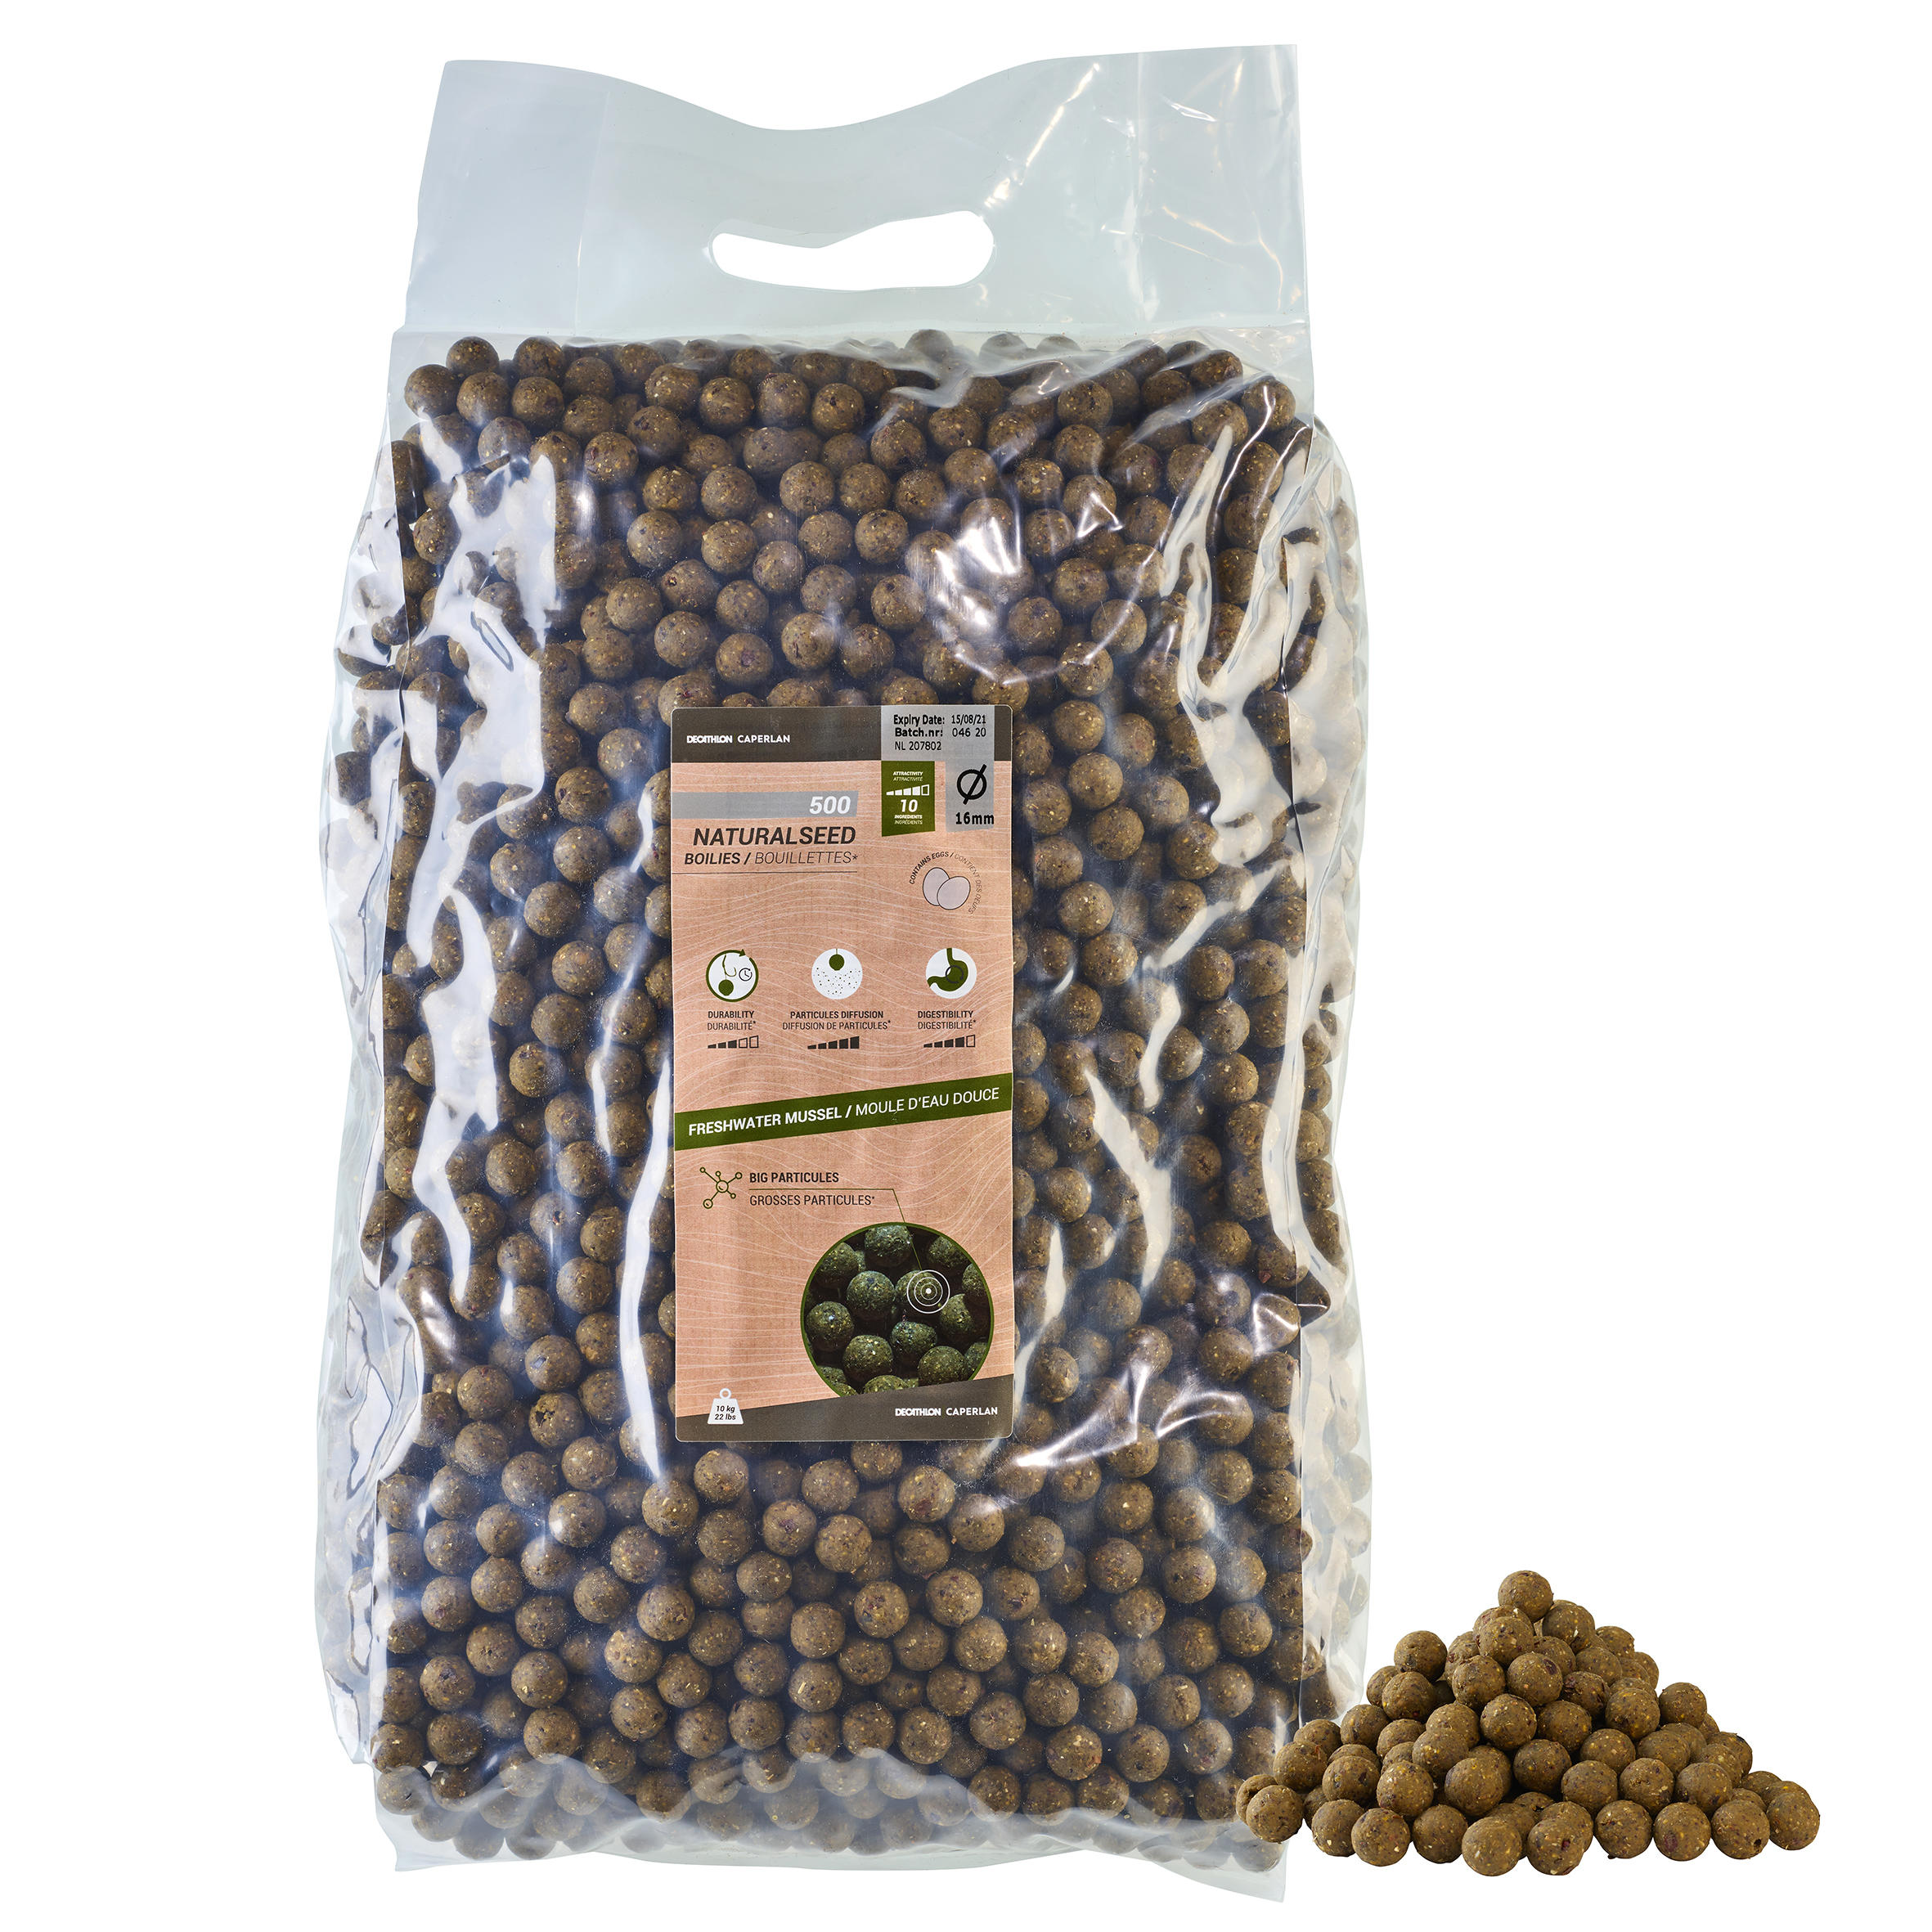 NATURALSEED Scoici 16mm 10kg